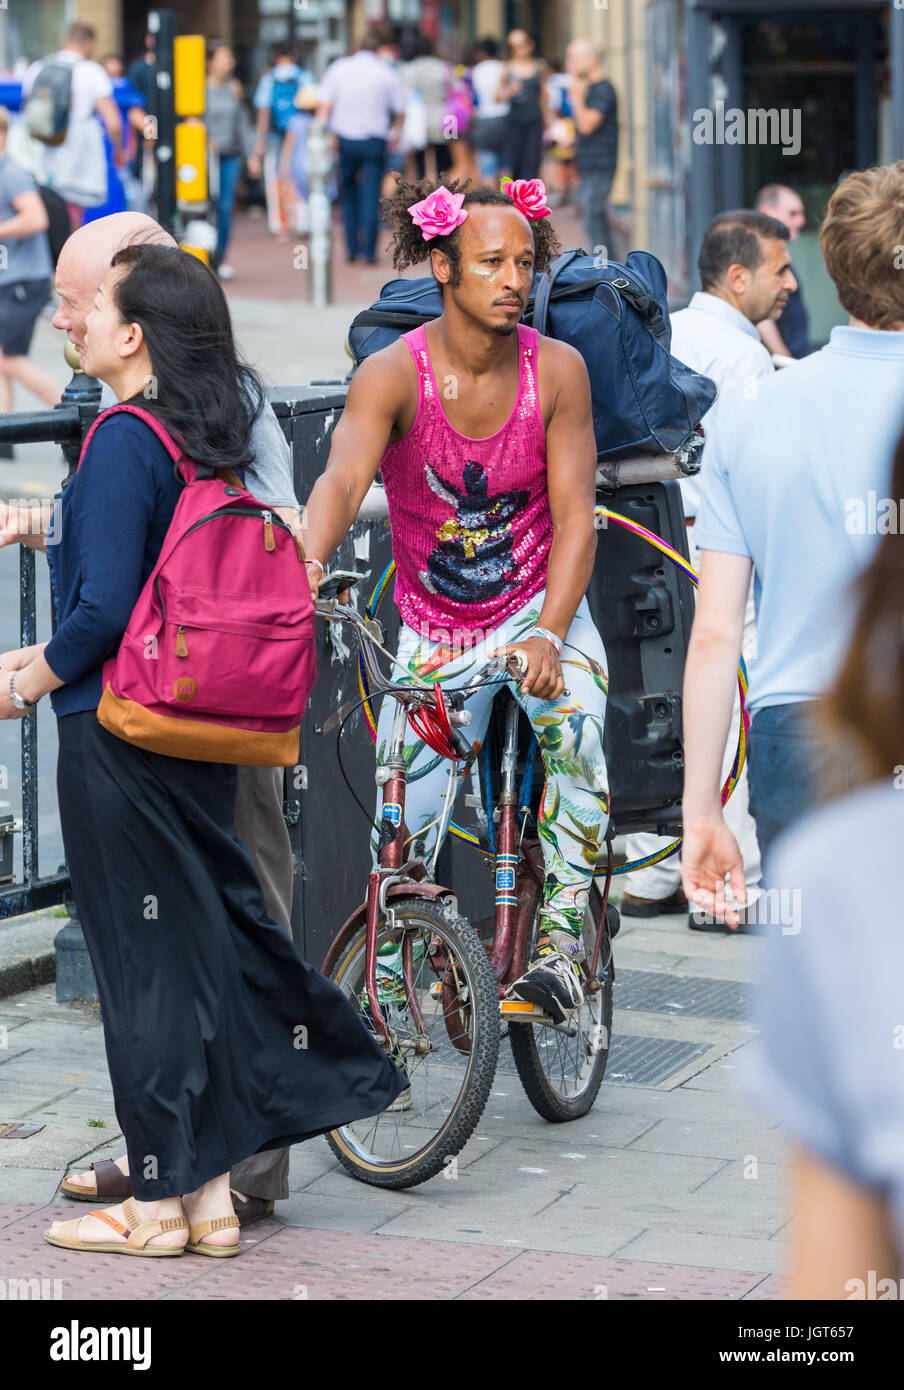 Pablo Woodward, The Disco Bunny, an entertainer on a bicycle in Brighton, East Sussex, England, UK. - Stock Image